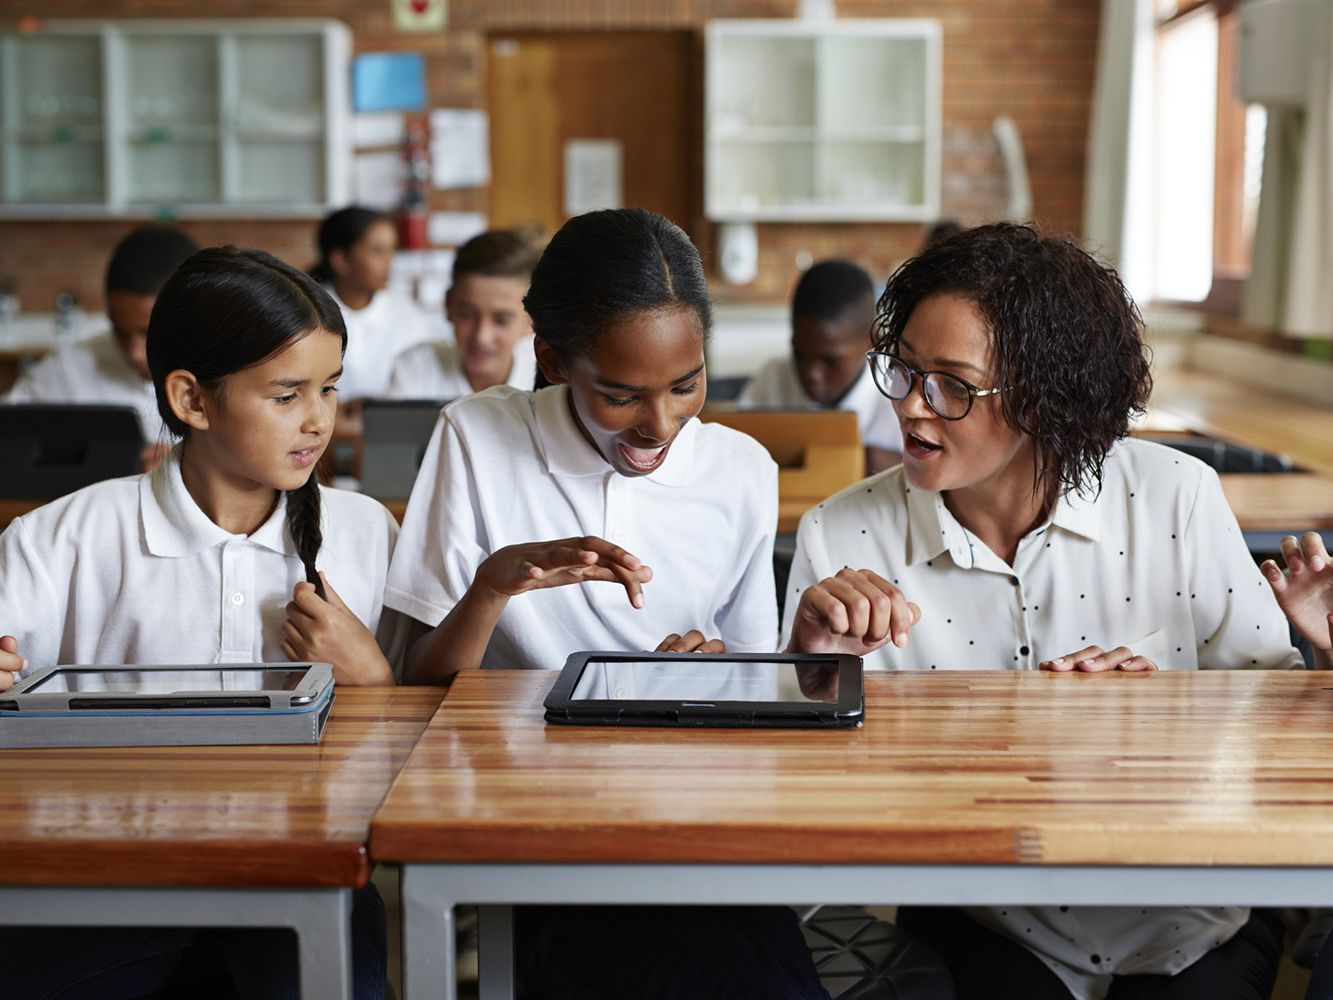 3 Ways to Market Your Private School